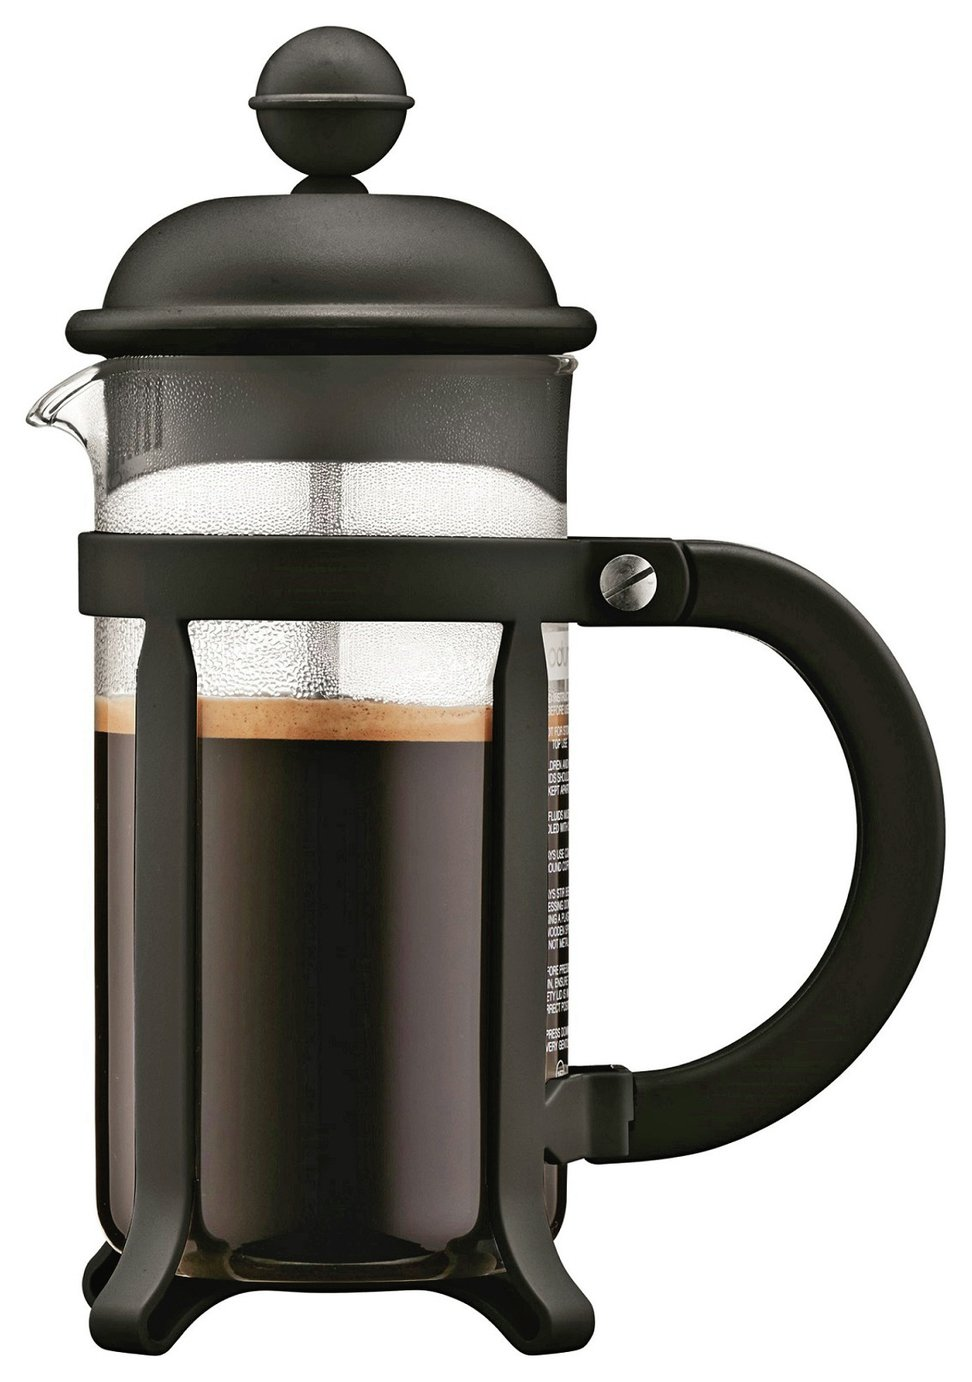 Image of Bodum 3 Cup Black Cafetiere